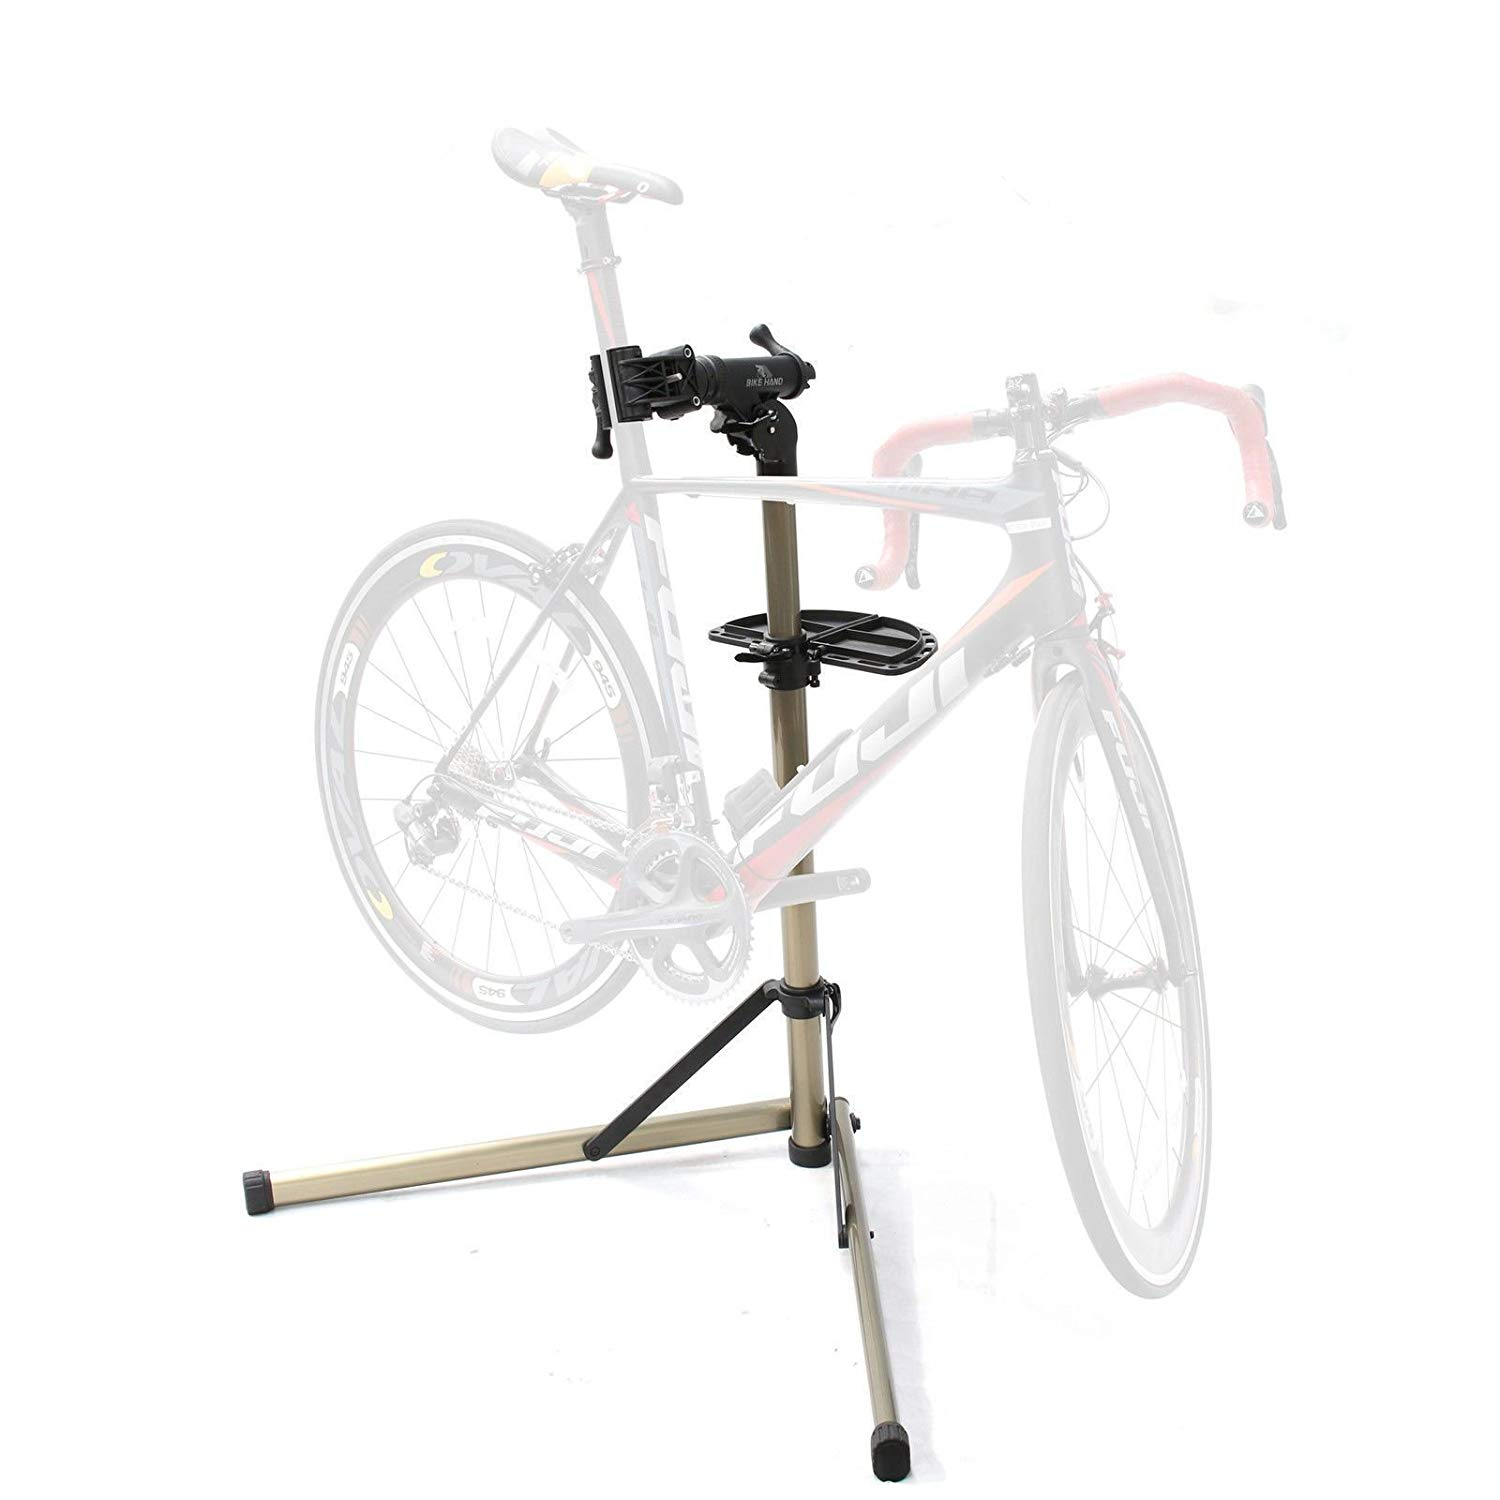 Bikehand Venzo Pro Mechanic Bicycle Repair Stand